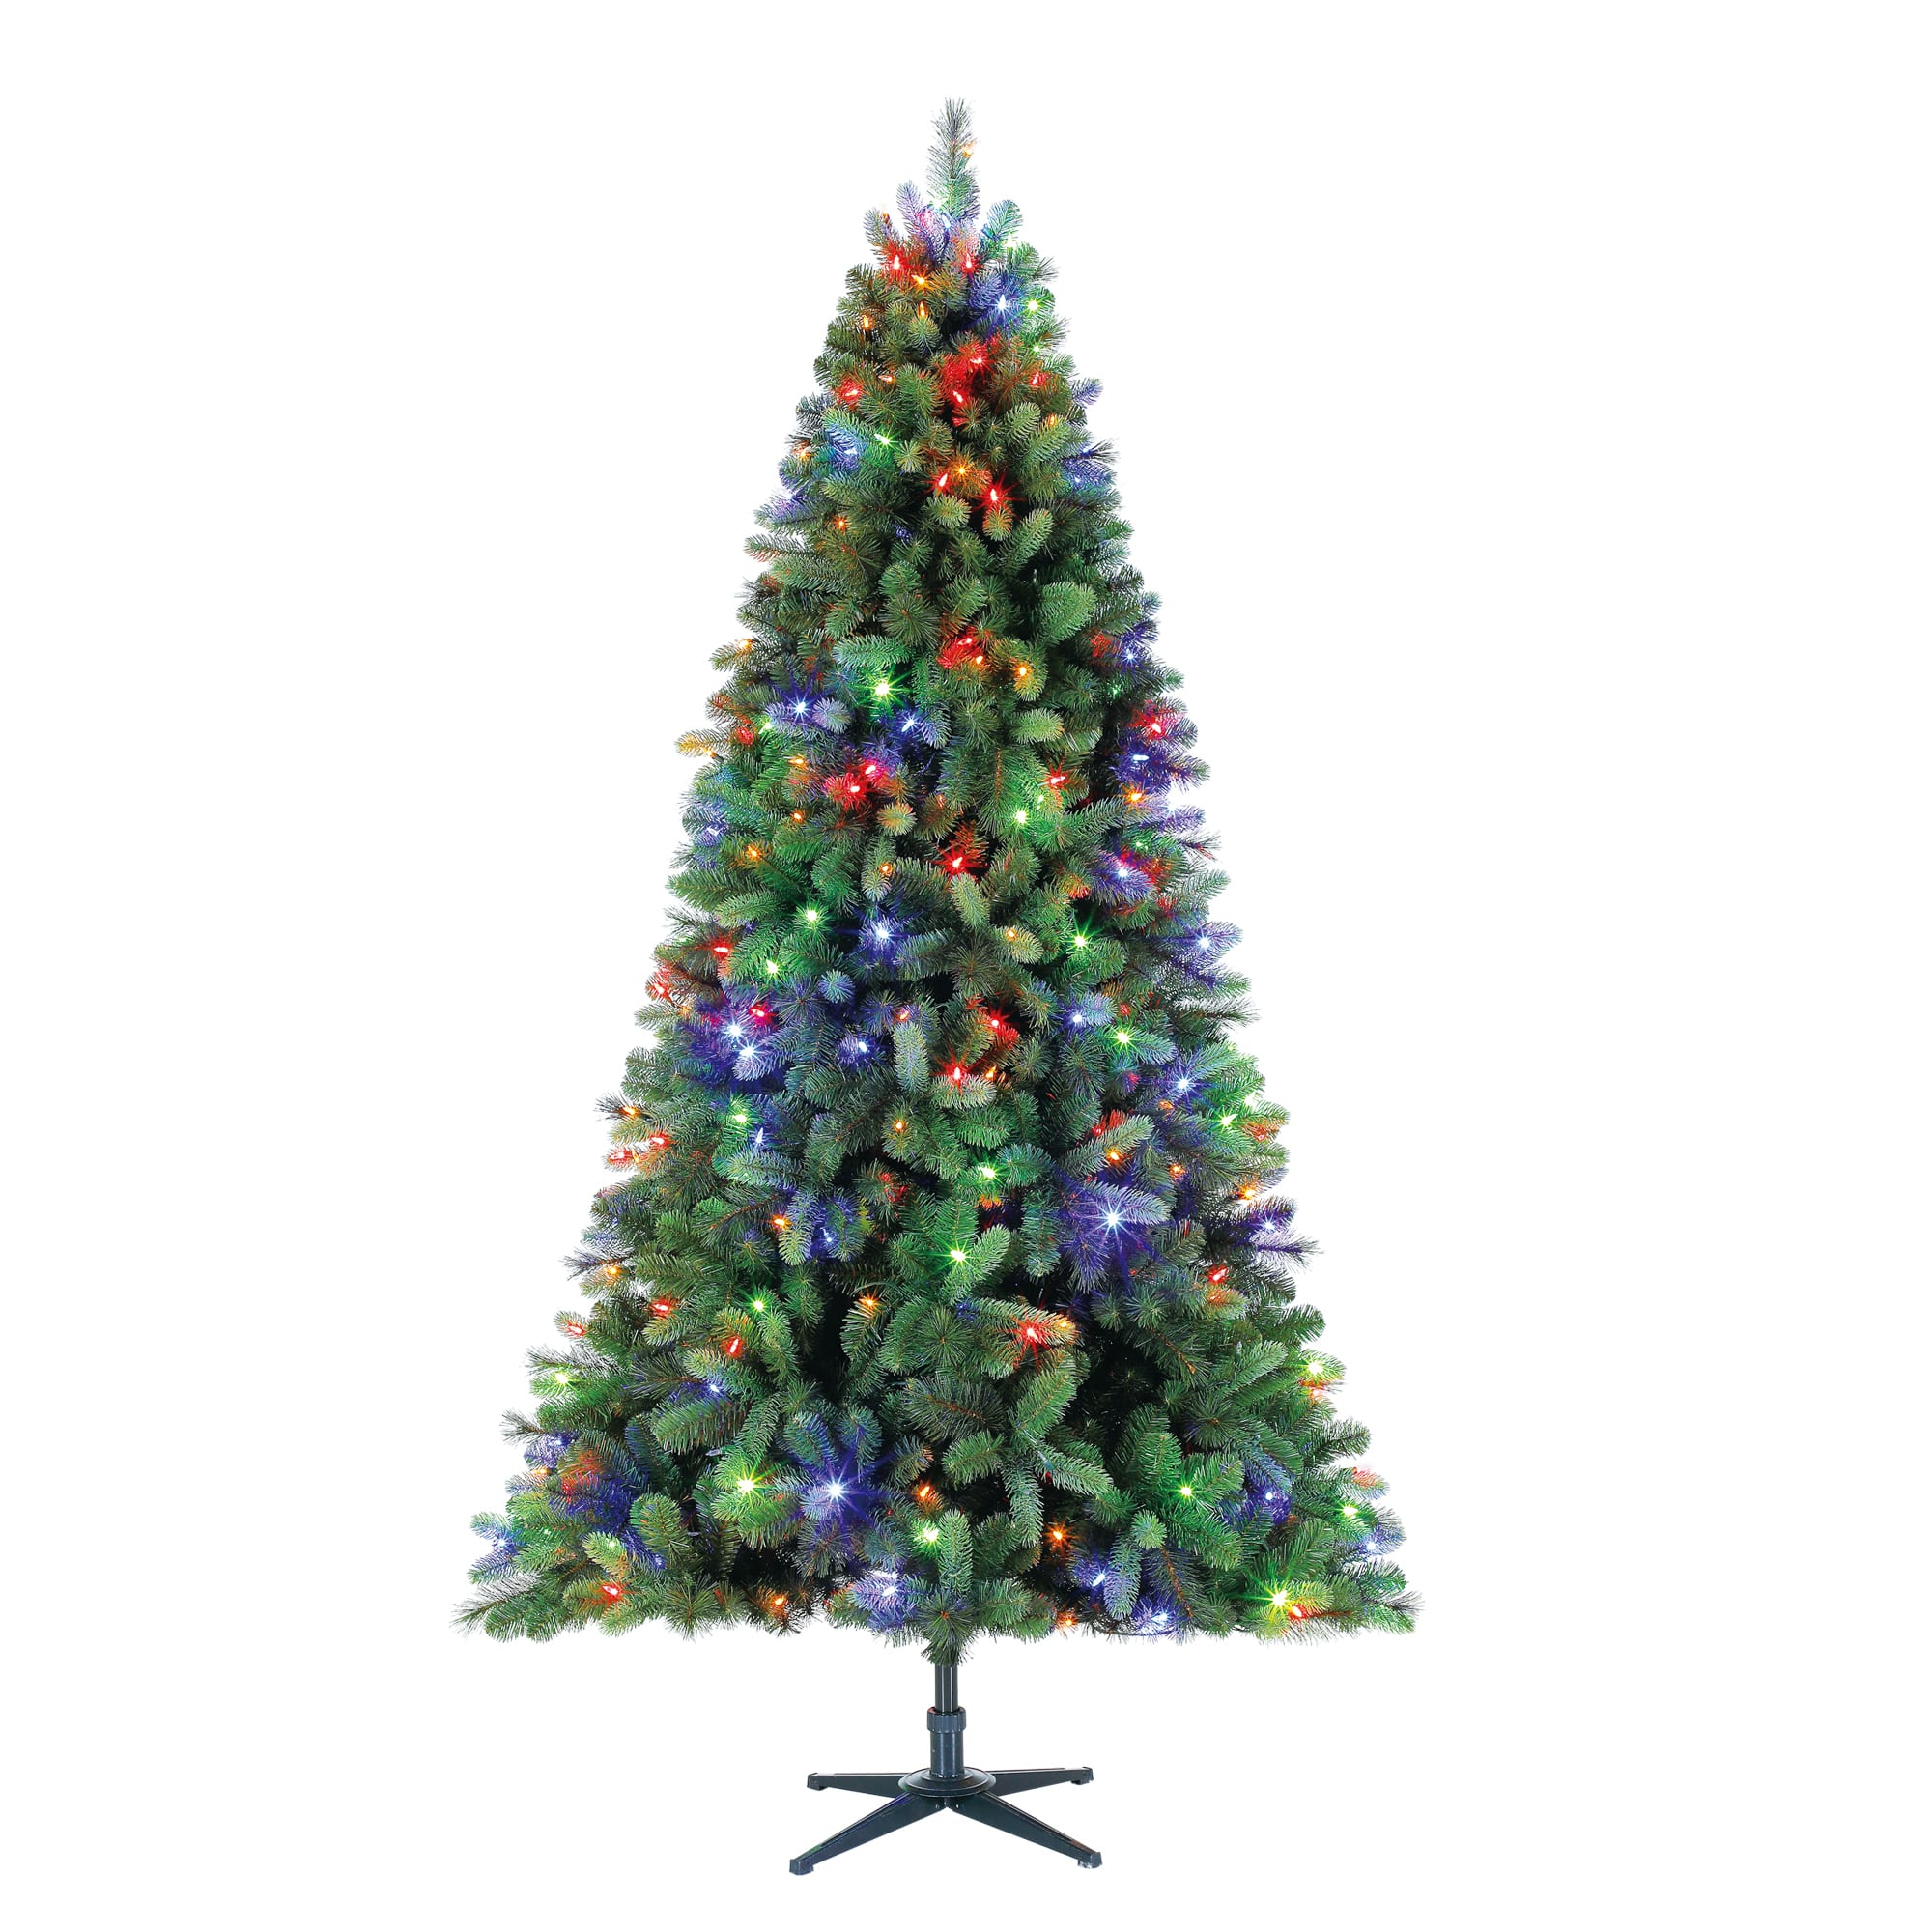 Holiday Time Pre-Lit 7.5' Norwich Spruce Christmas Tree, 350 Color Changing-Lights $68.00 YMMV